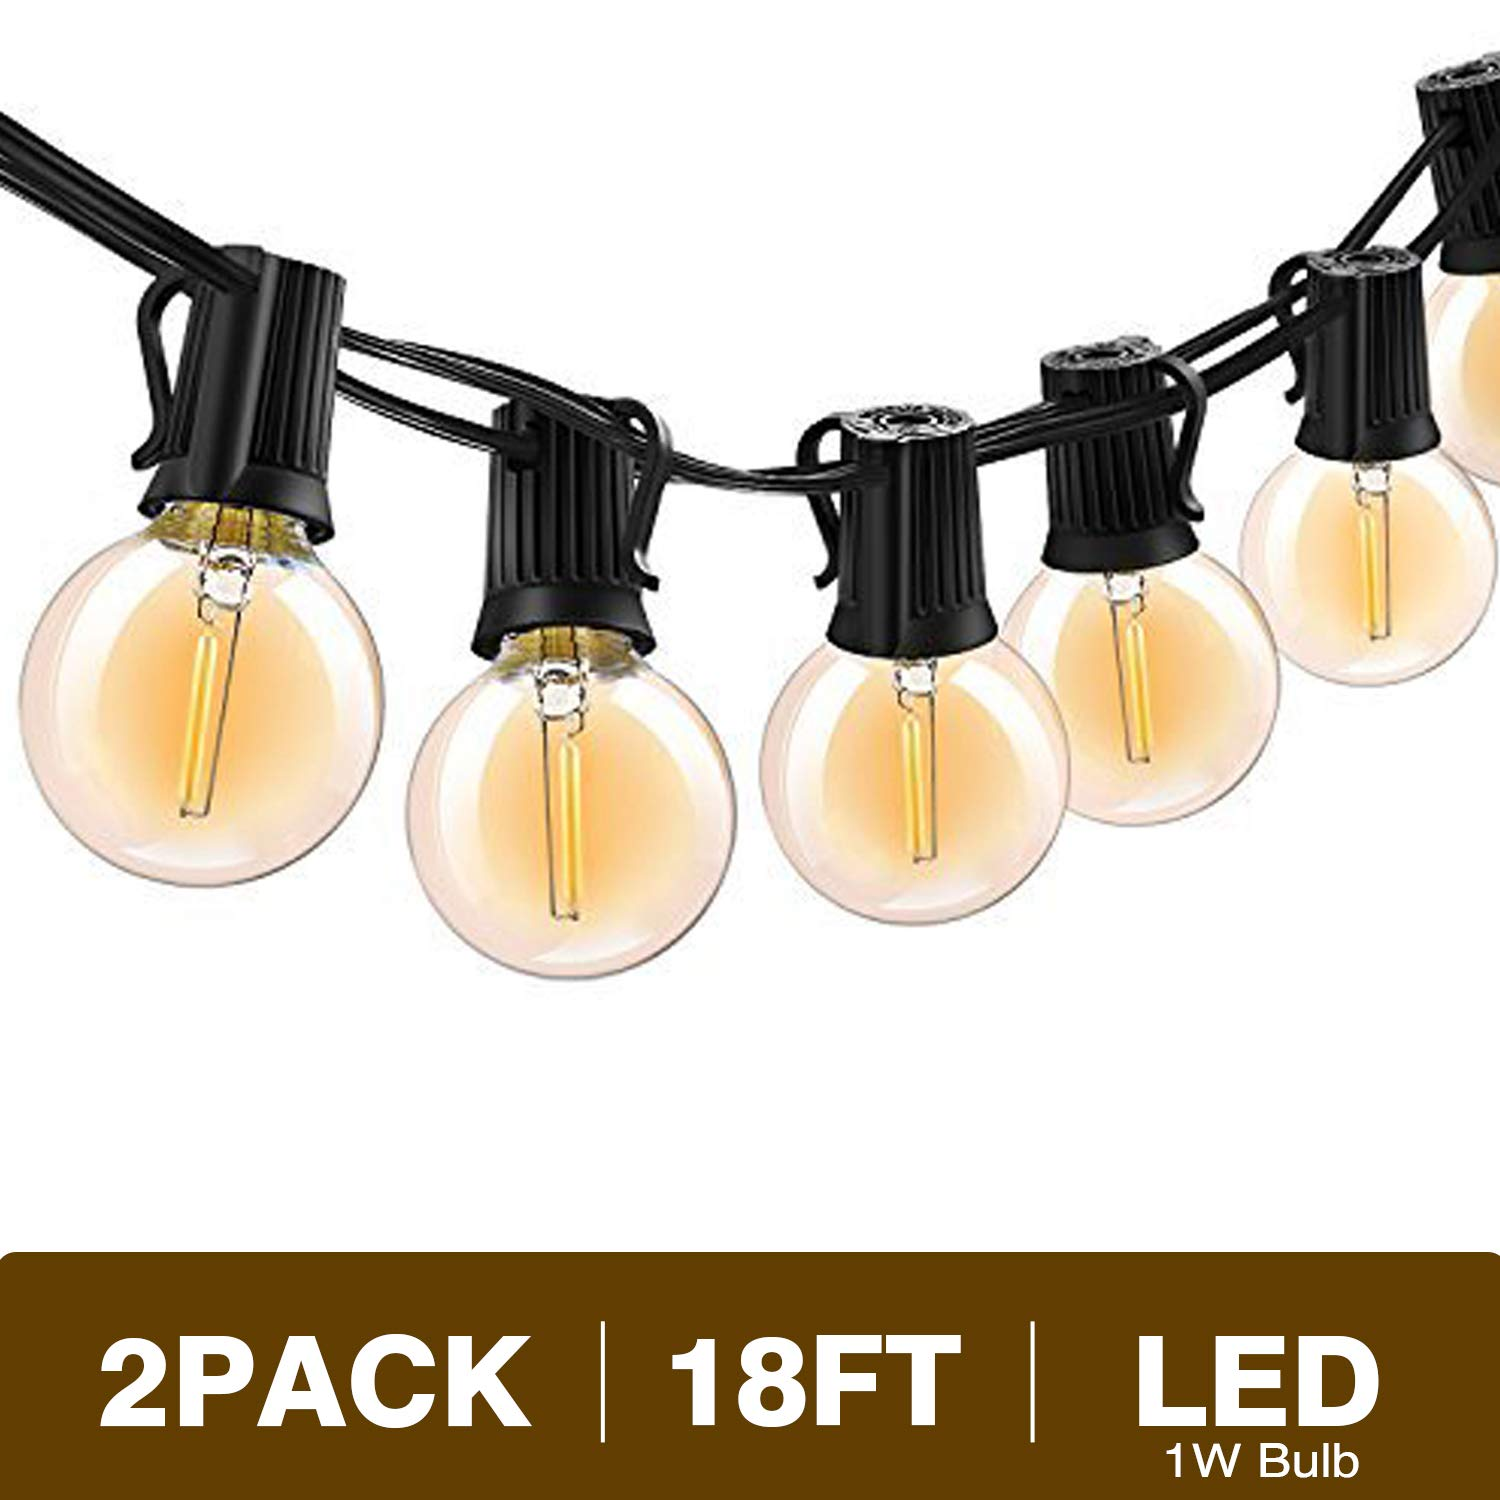 Svater G40 Led String Lights 18Ft 10 Hanging Socket with 10 Globe Vintage LED Bulbs 1W 2700K Warm White Non Dimmable IP45 Waterproof Indoor/Outdoor Light String for Backyard Tents Market Cafe Porch Party 2 Pack